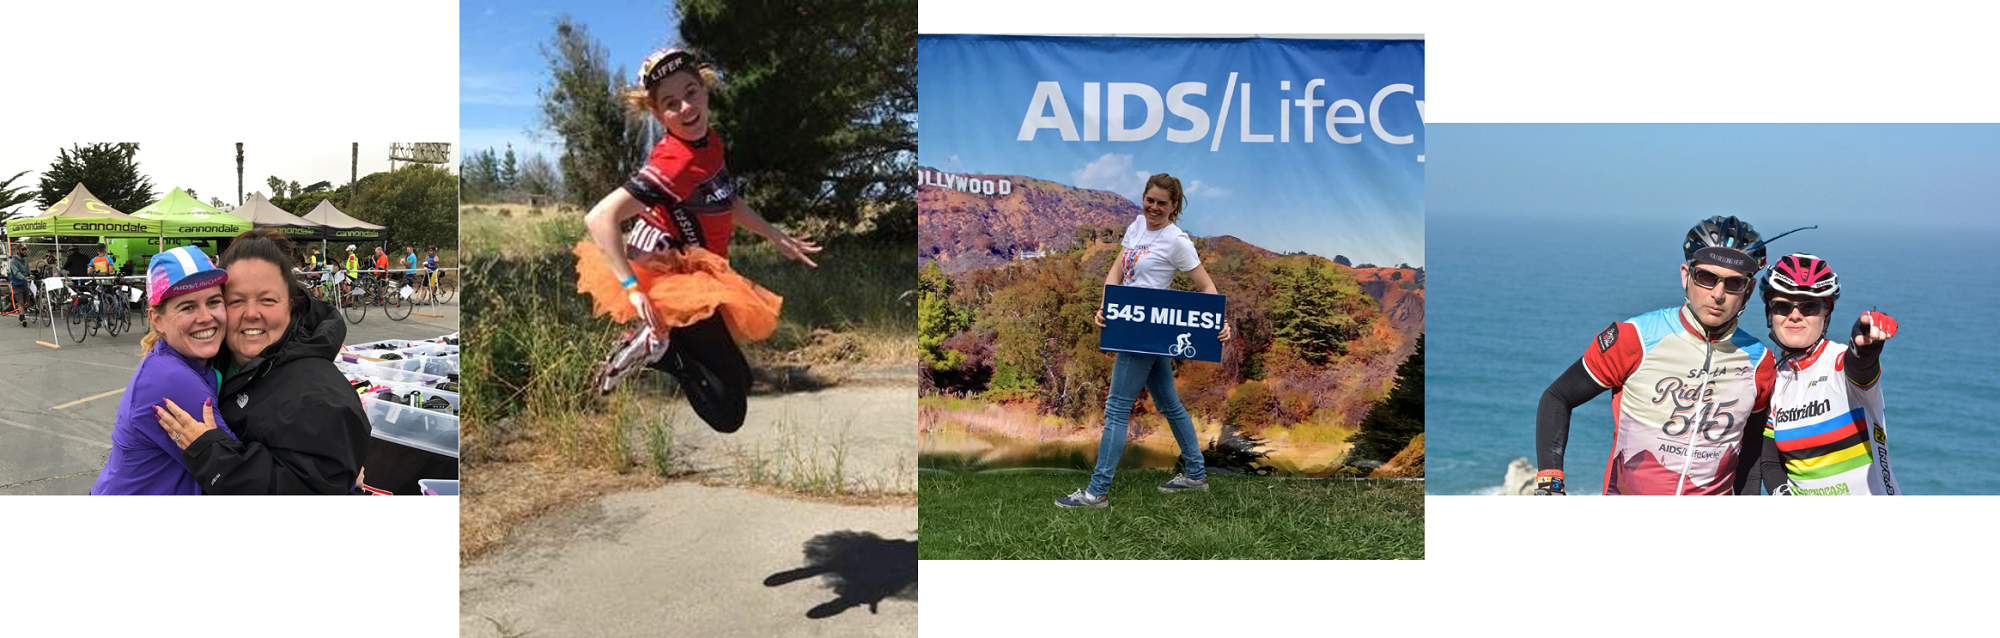 """From a stop in Bradley, CA where we raise 58K, to a fun """"Red Dress"""" day,  follow by the goal achieved at Fairfax High School in LA with the miles completed -  Next year we are hoping for more HPE employees to join - YOU CAN DO IT!"""